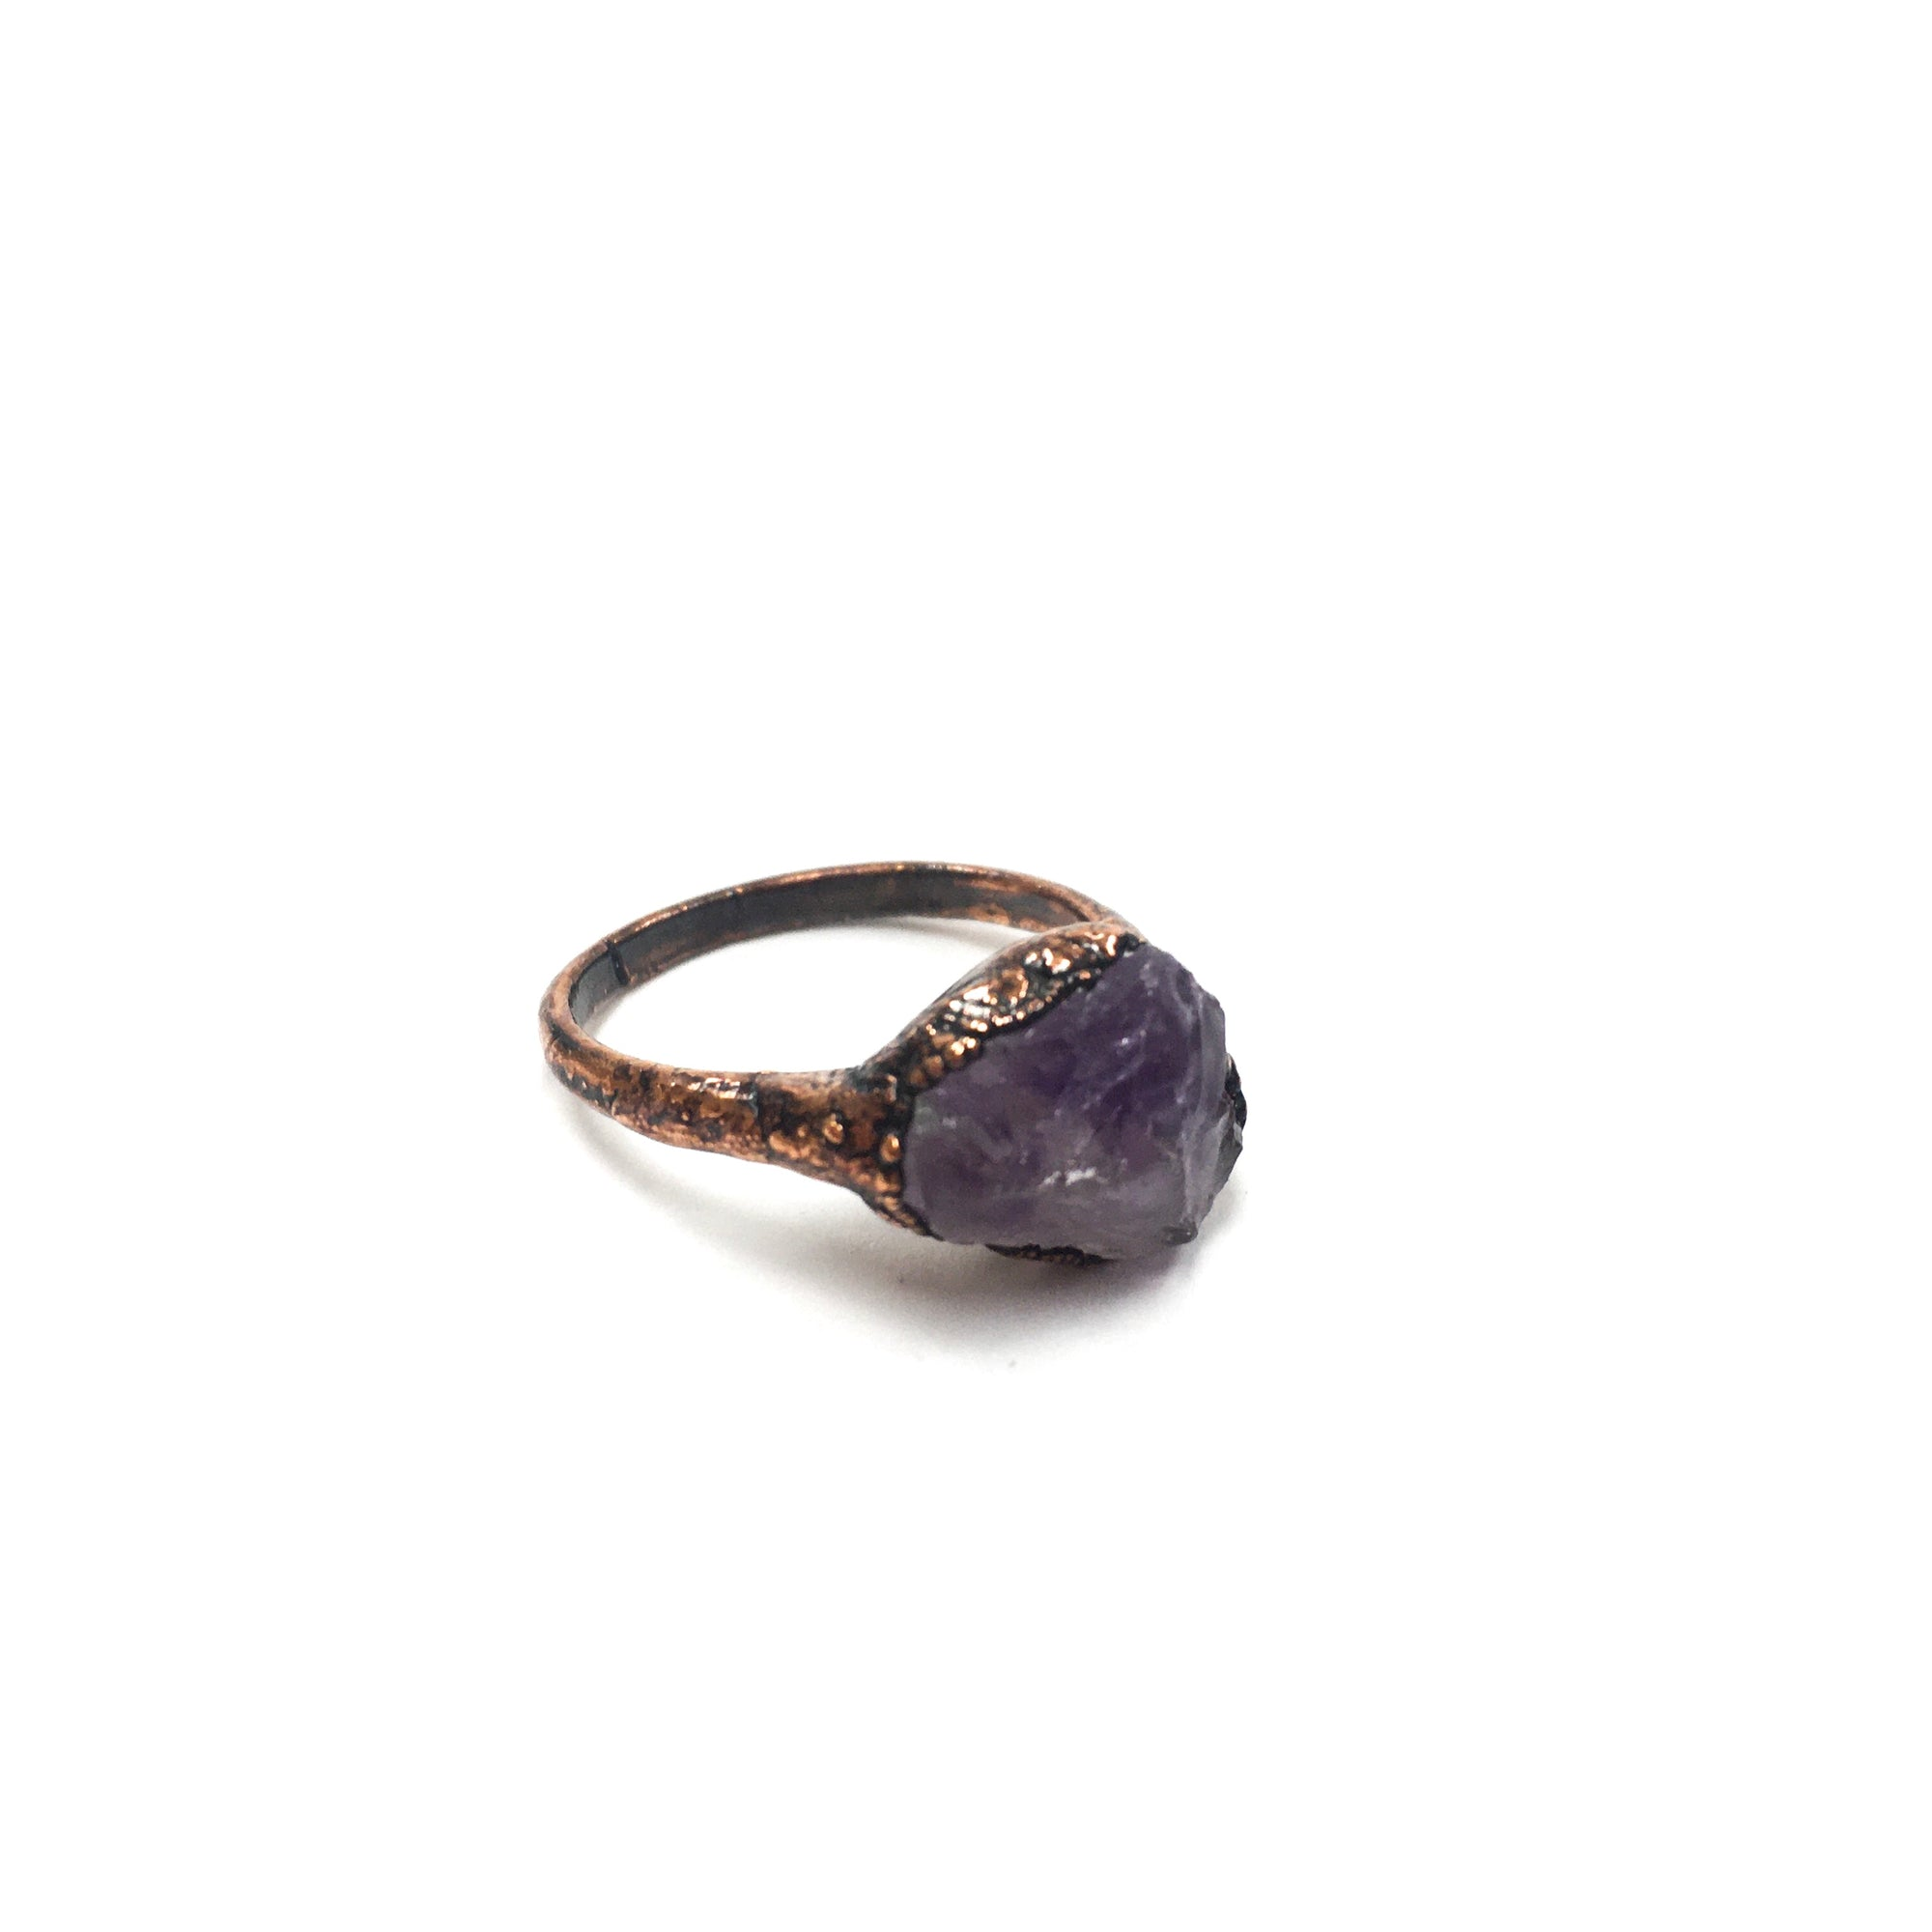 Amethyst Ring With Copper Band